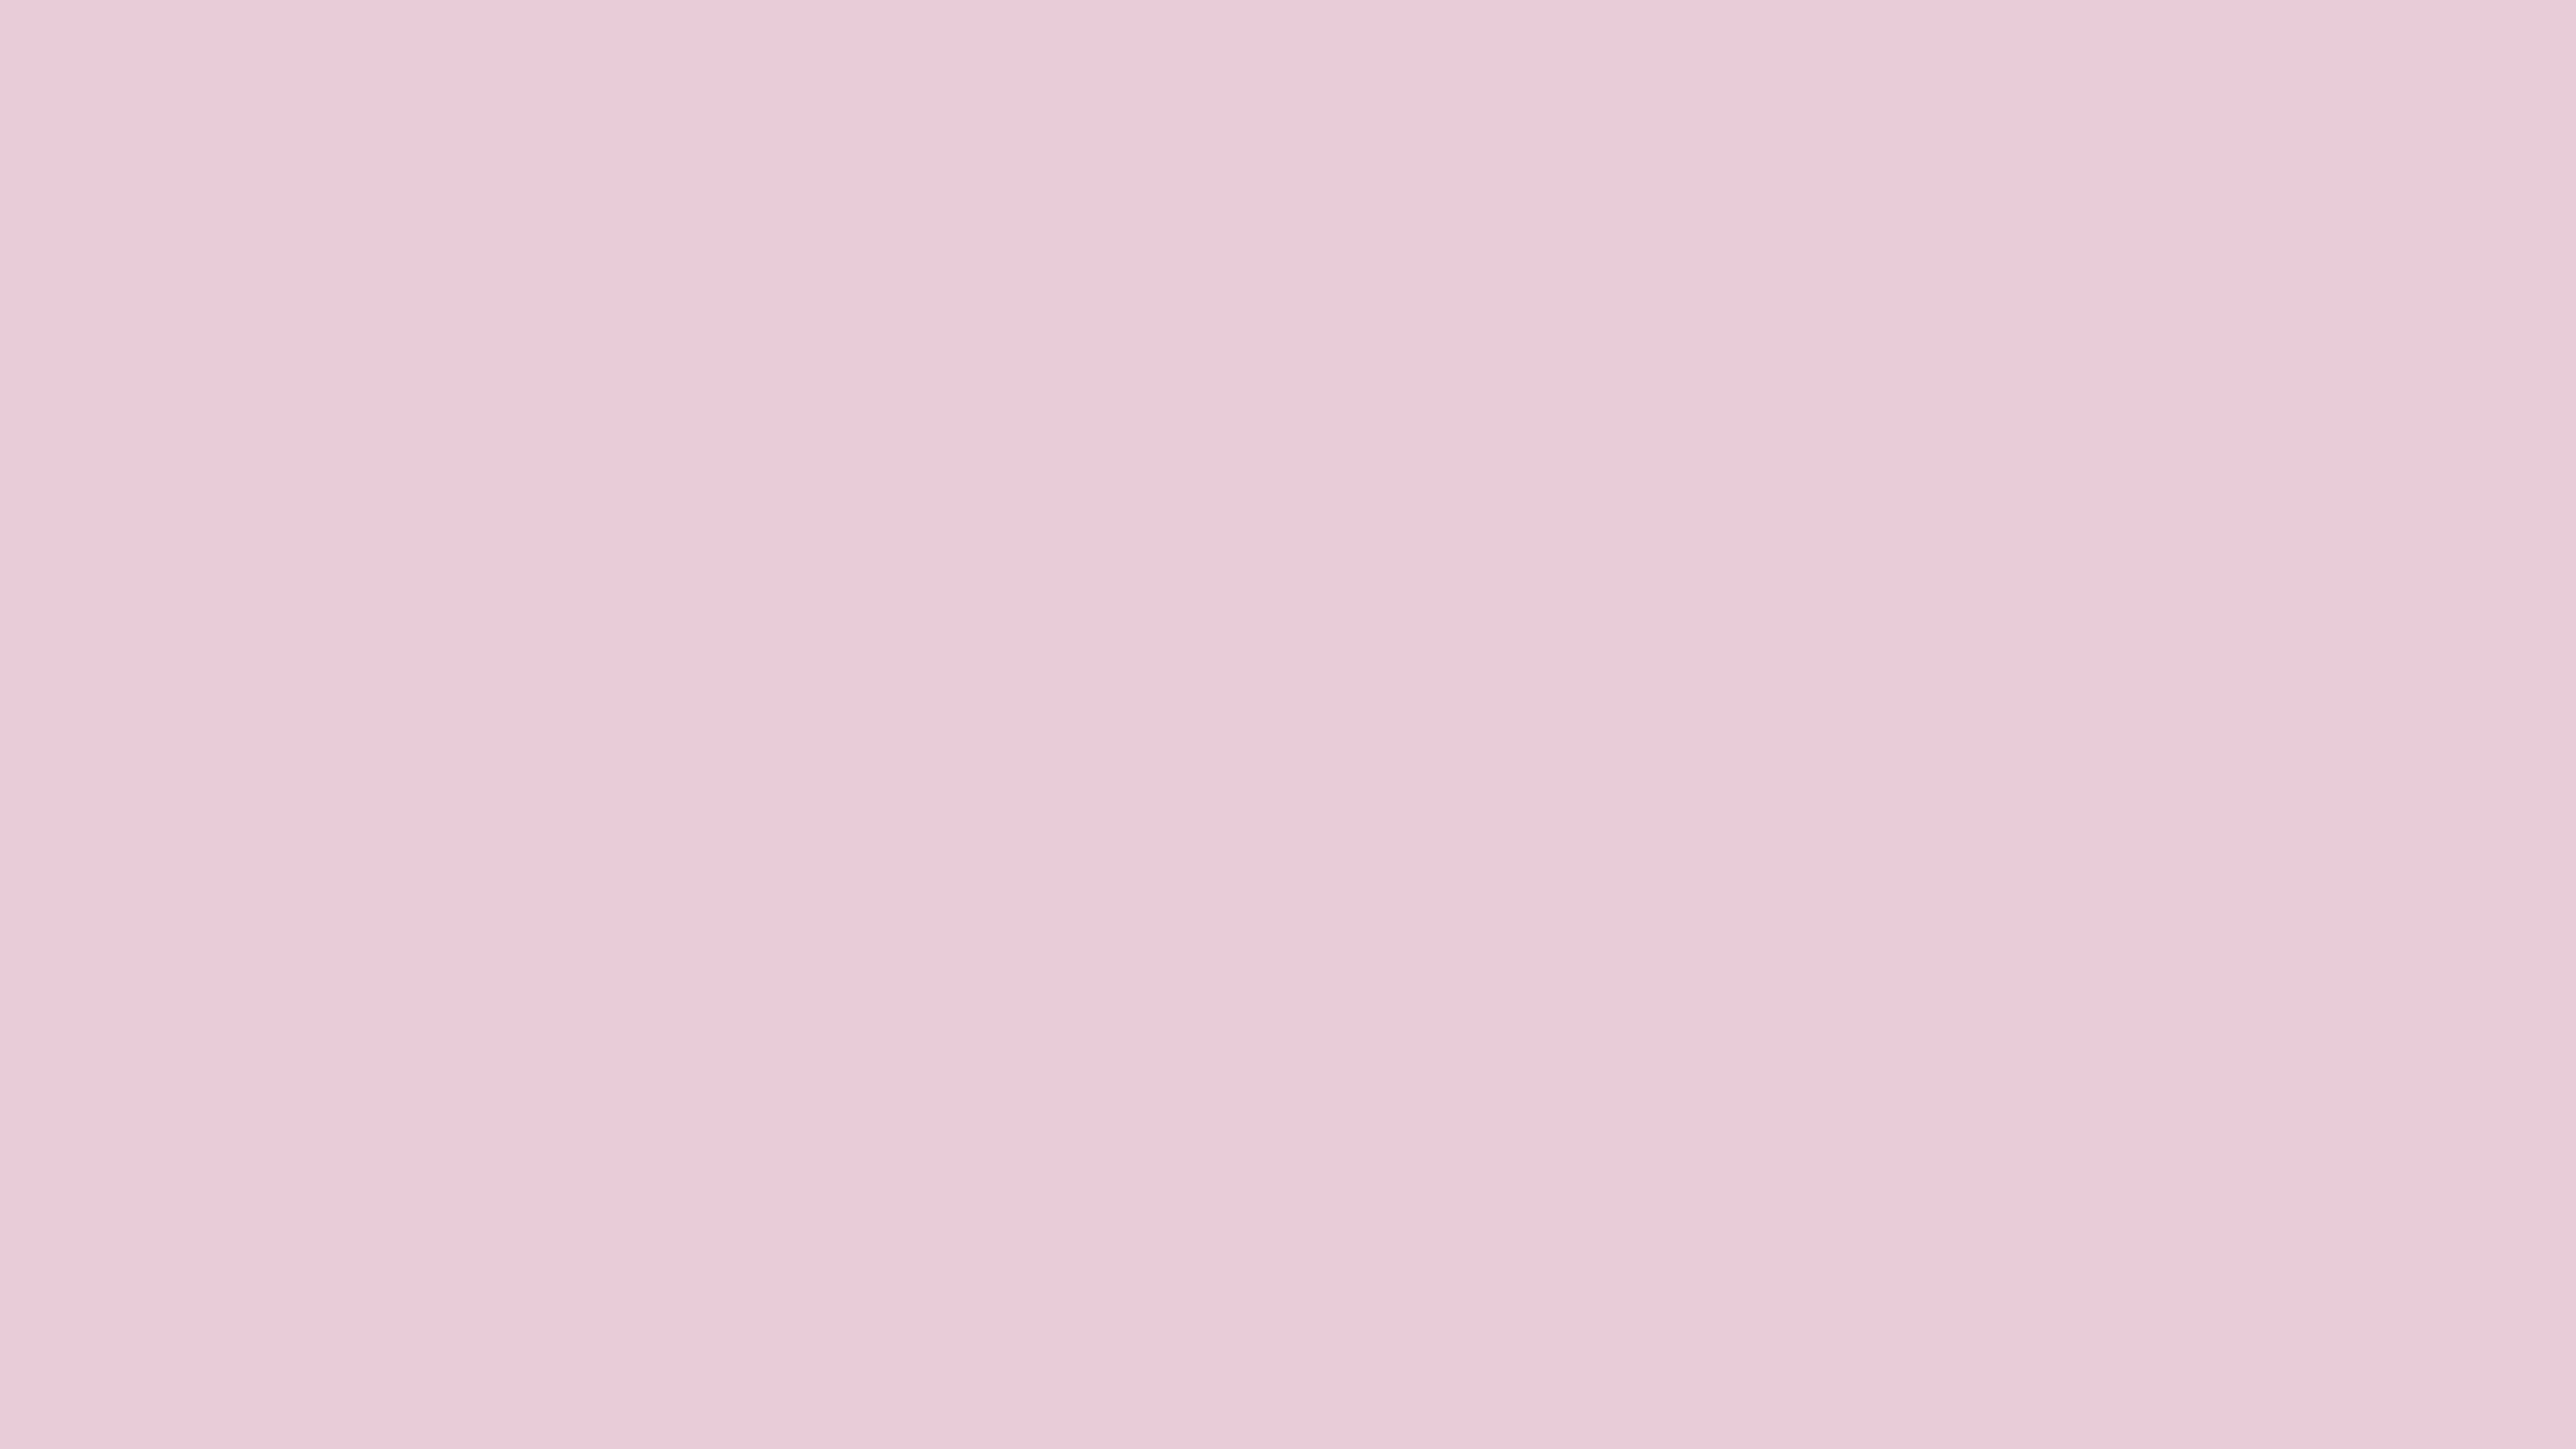 5120x2880 Queen Pink Solid Color Background